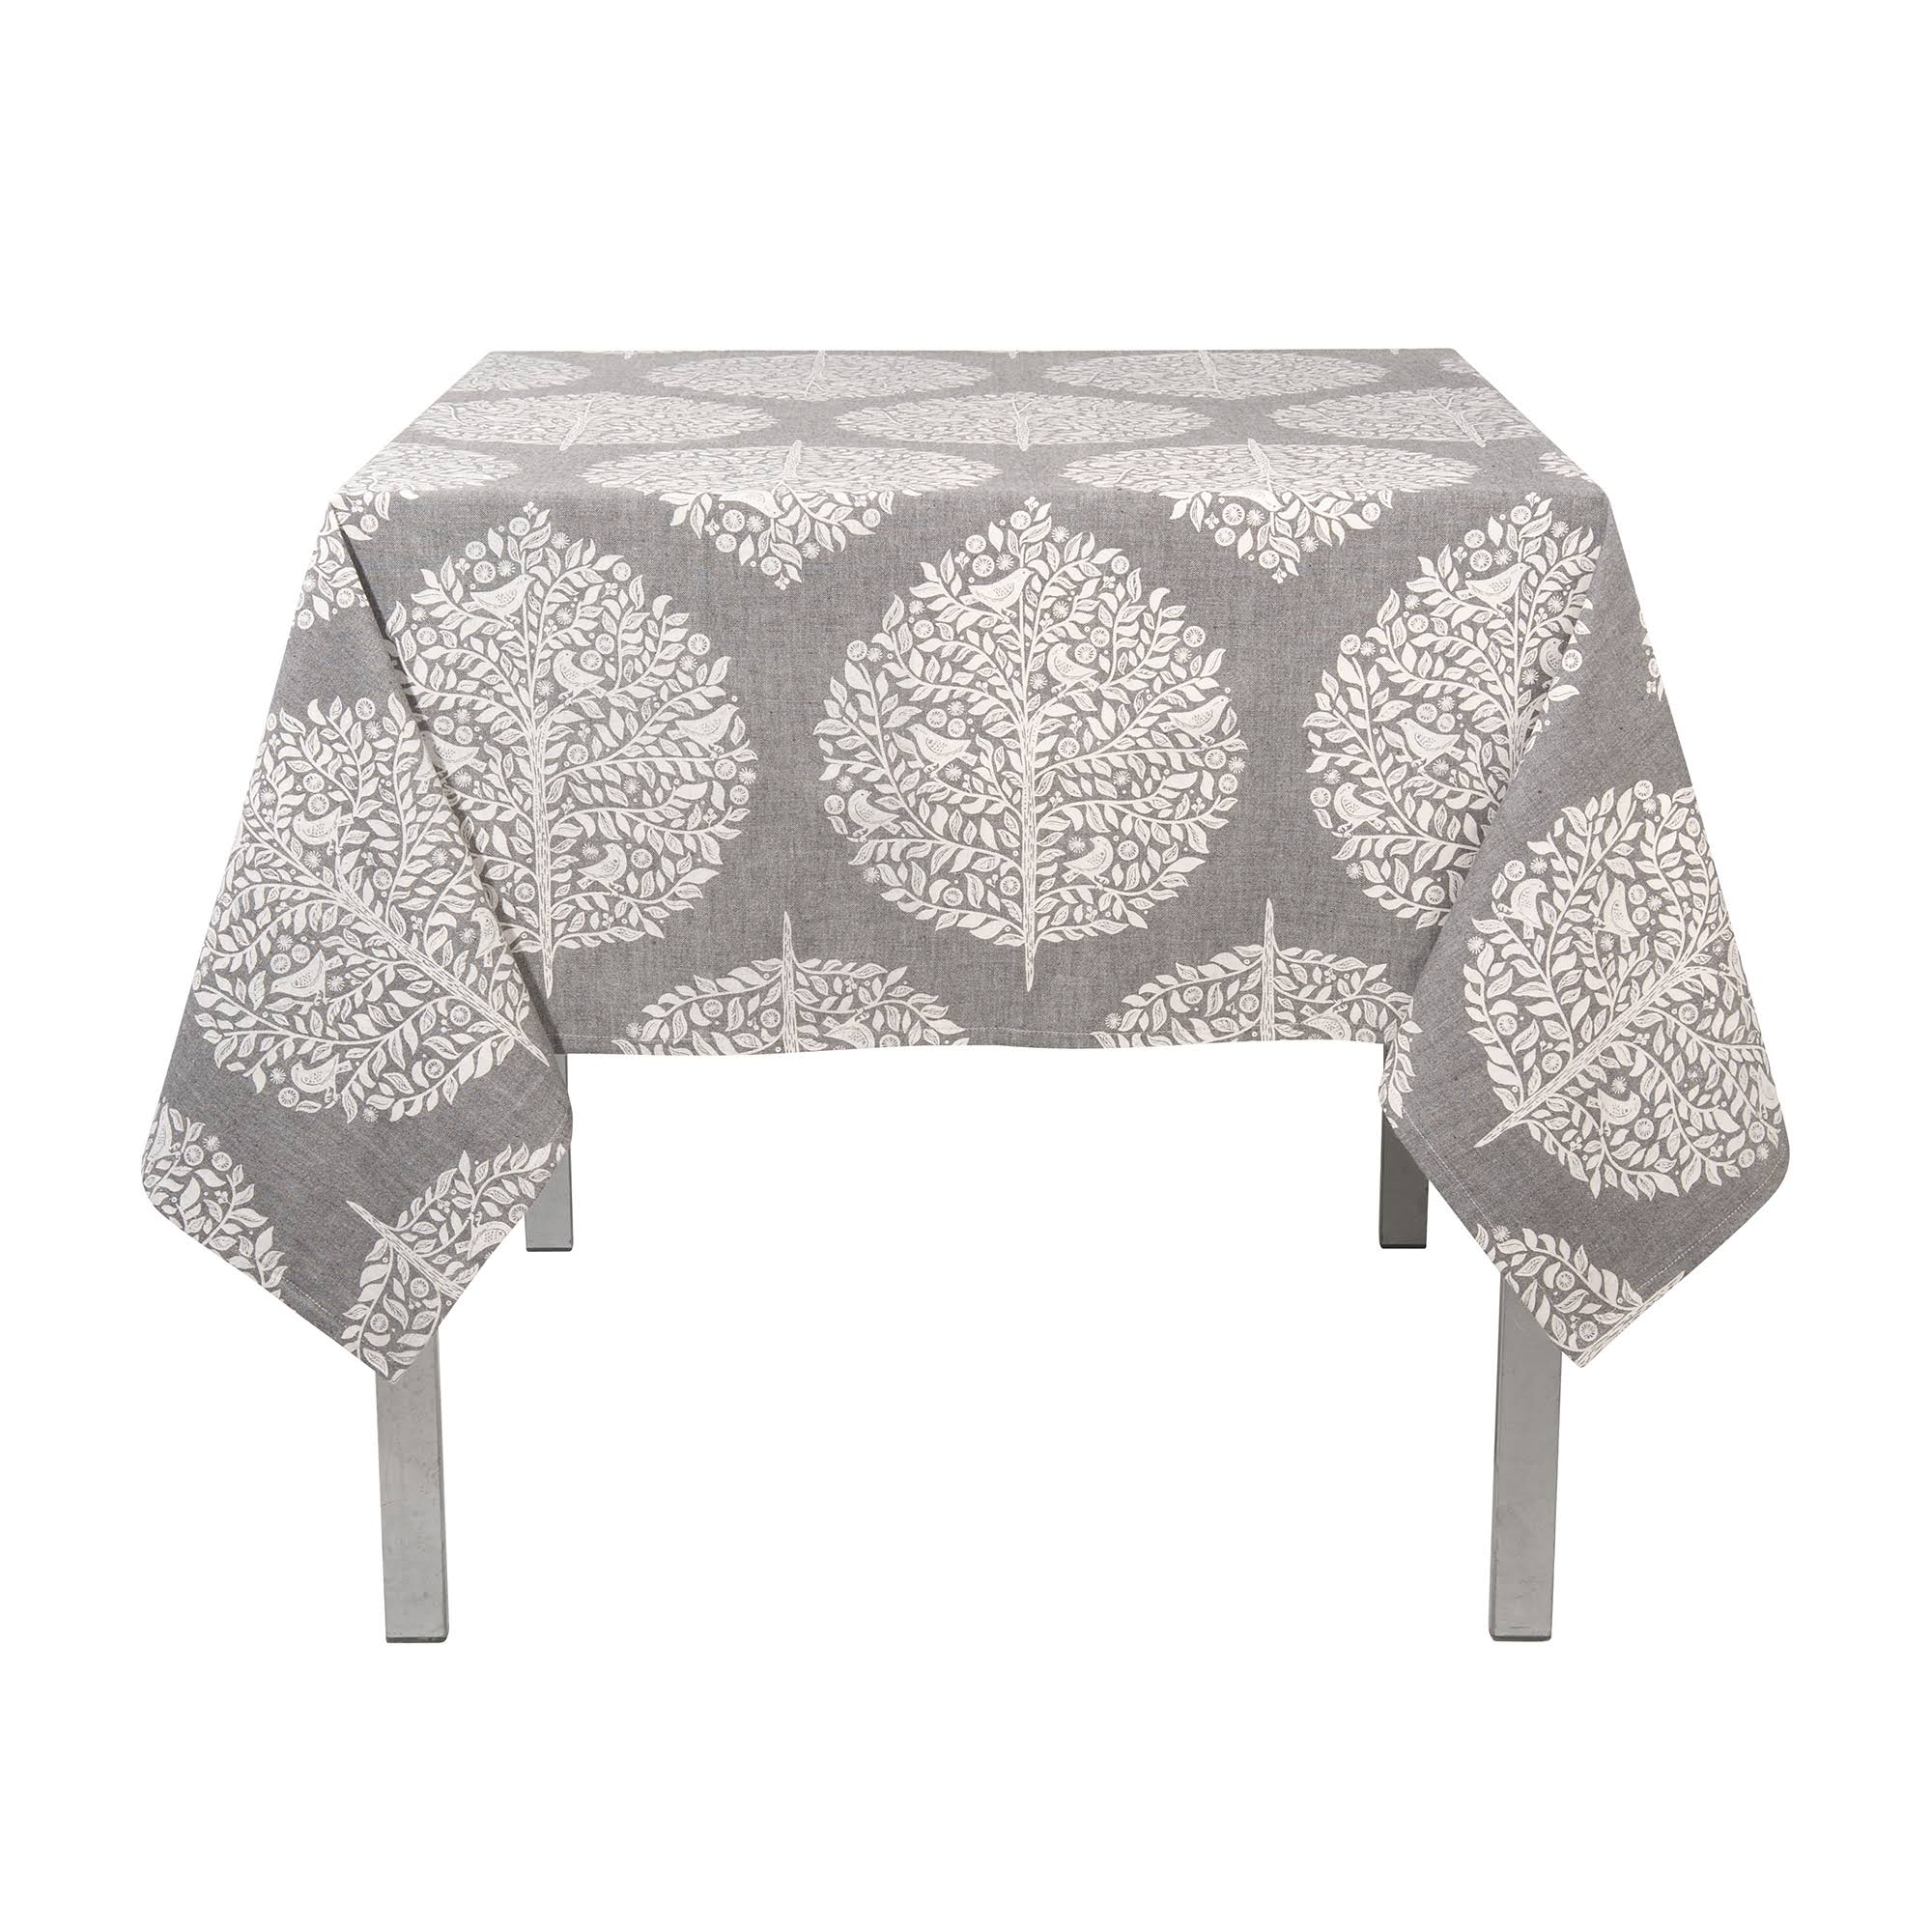 Now Designs Cotton Tablecloth - Elmwood Grey, 60in x 120in